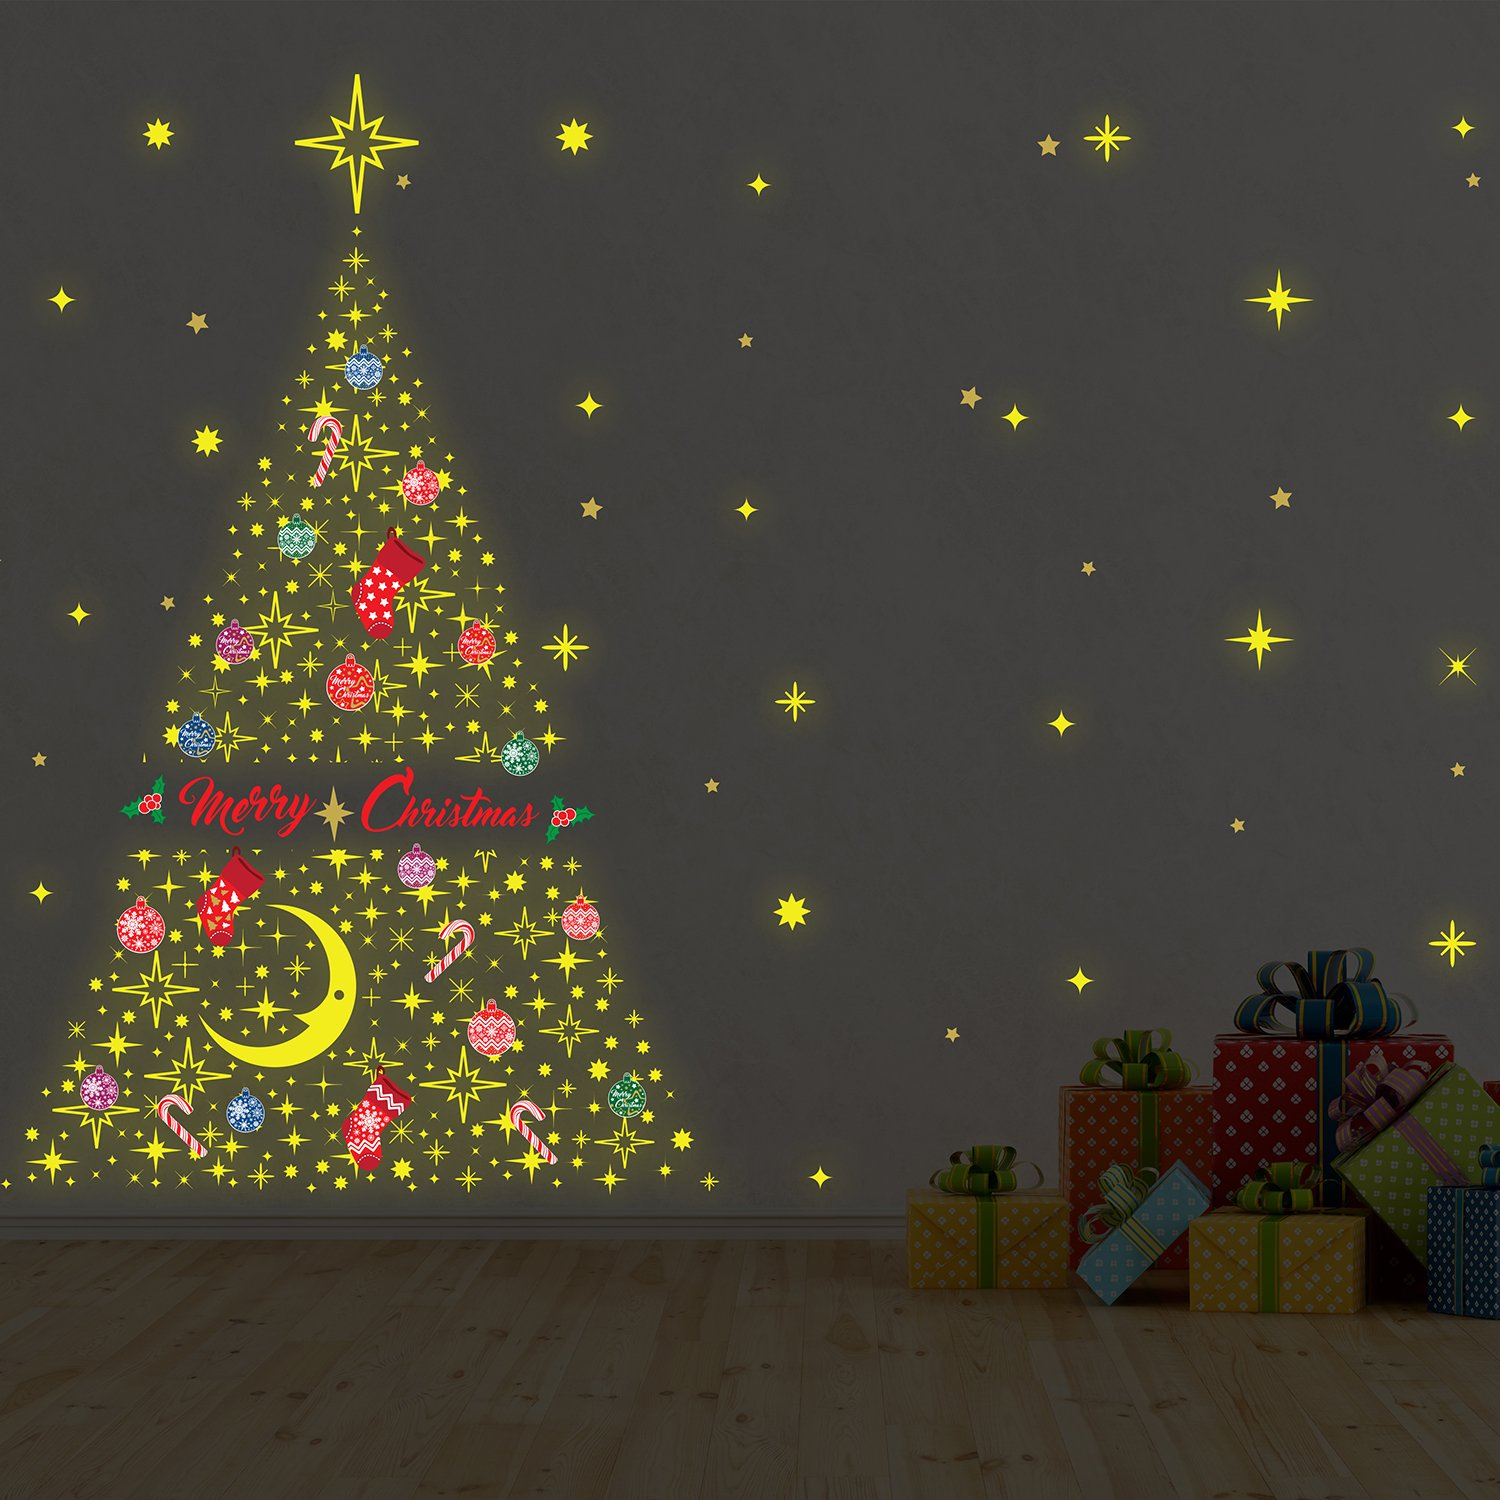 Wallflexi Christmas Decorations Wall Stickers Glow In Dark Christmas Tree Wall Murals Decals Living Room Children Nursery School Restaurant Cafe Hotel Home Office Decor Multicolour Amazon Co Uk Kitchen Home